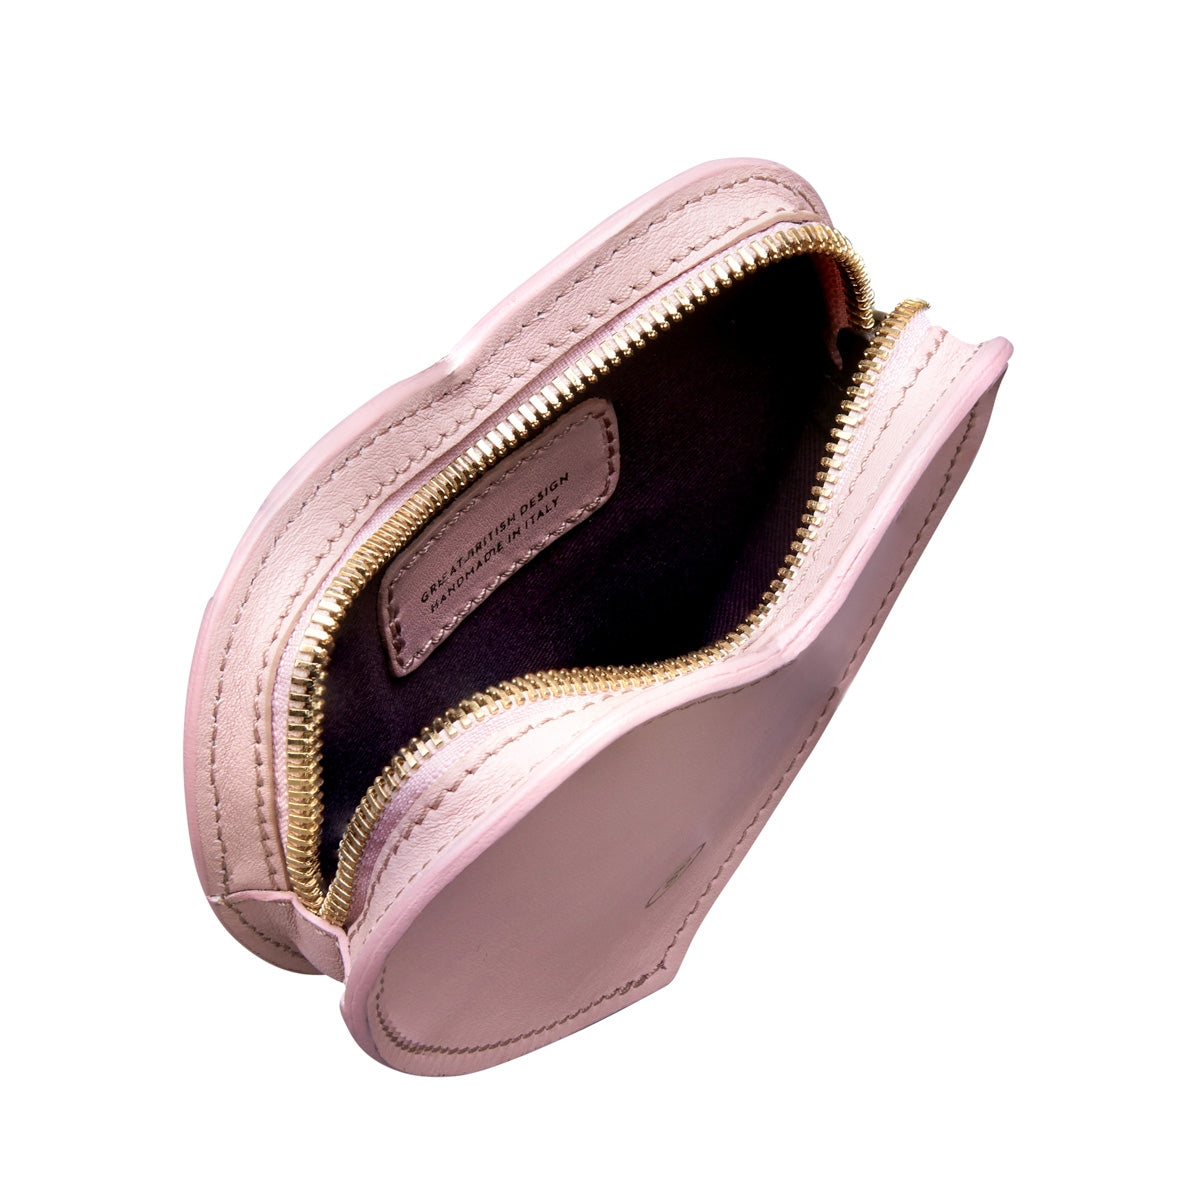 Image 5 of the 'MirabellaL' Pink Leather Handbag Tidy